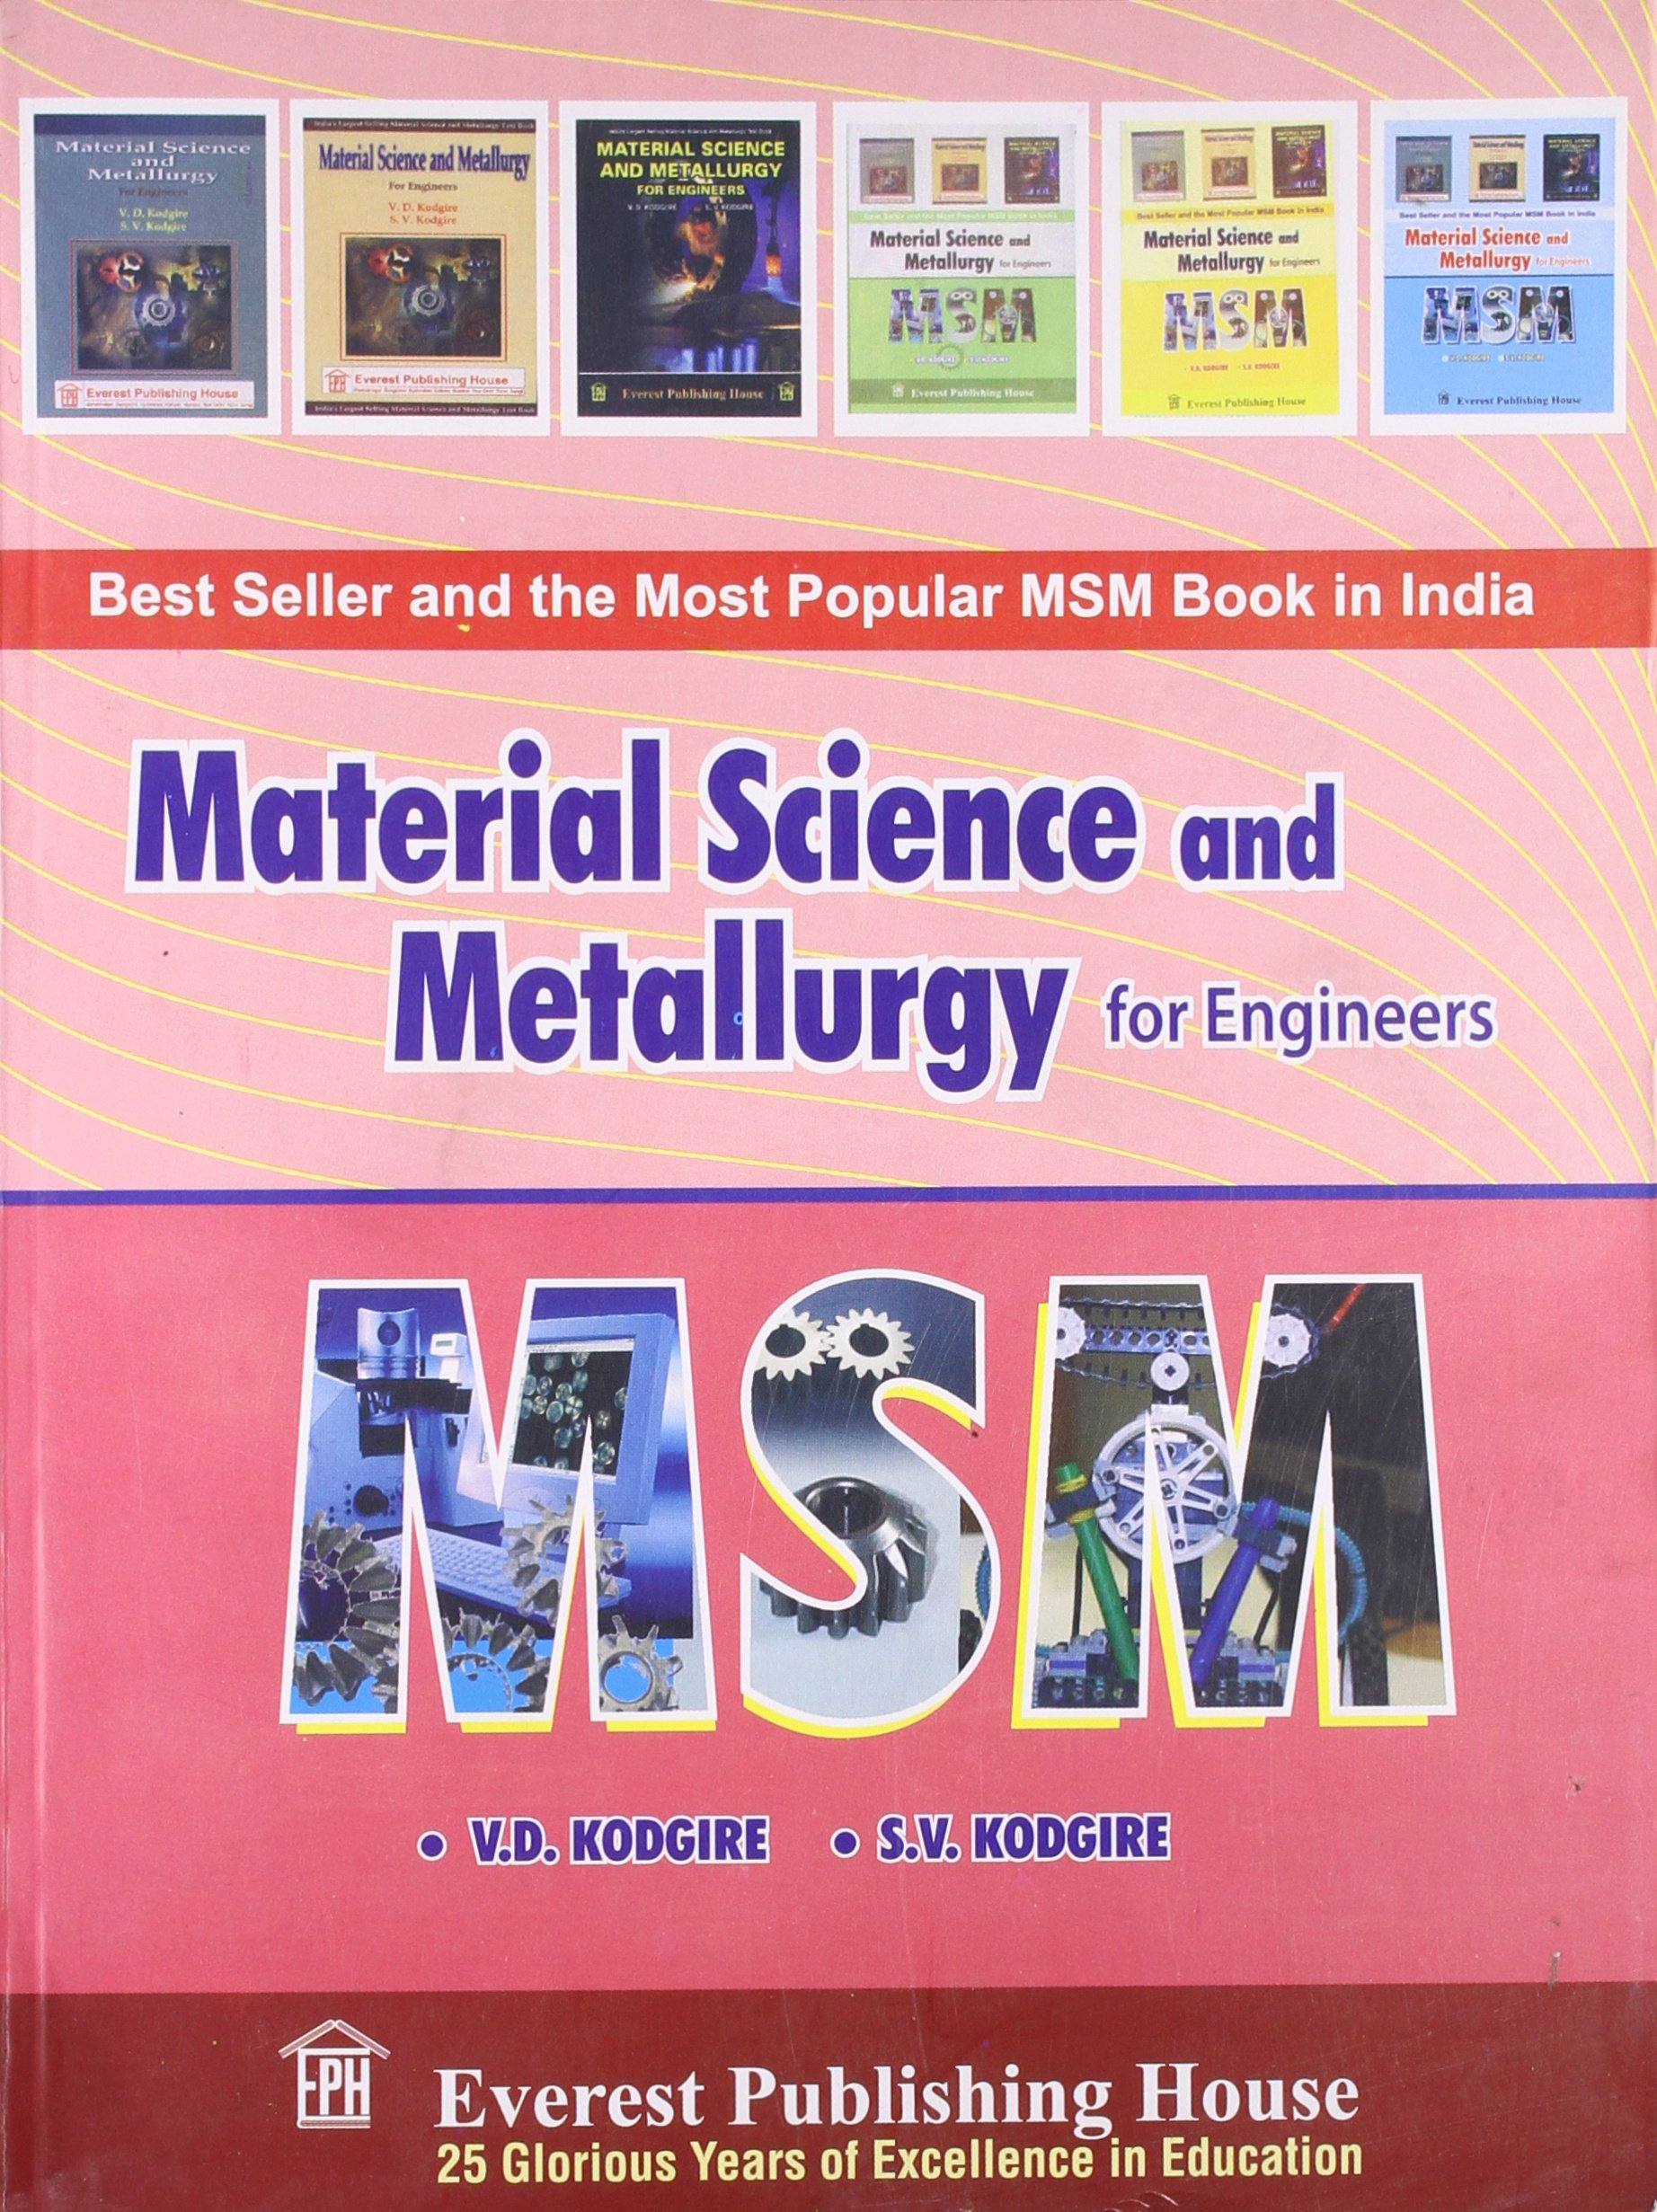 Material science & metallurgy by o. P. Khanna.